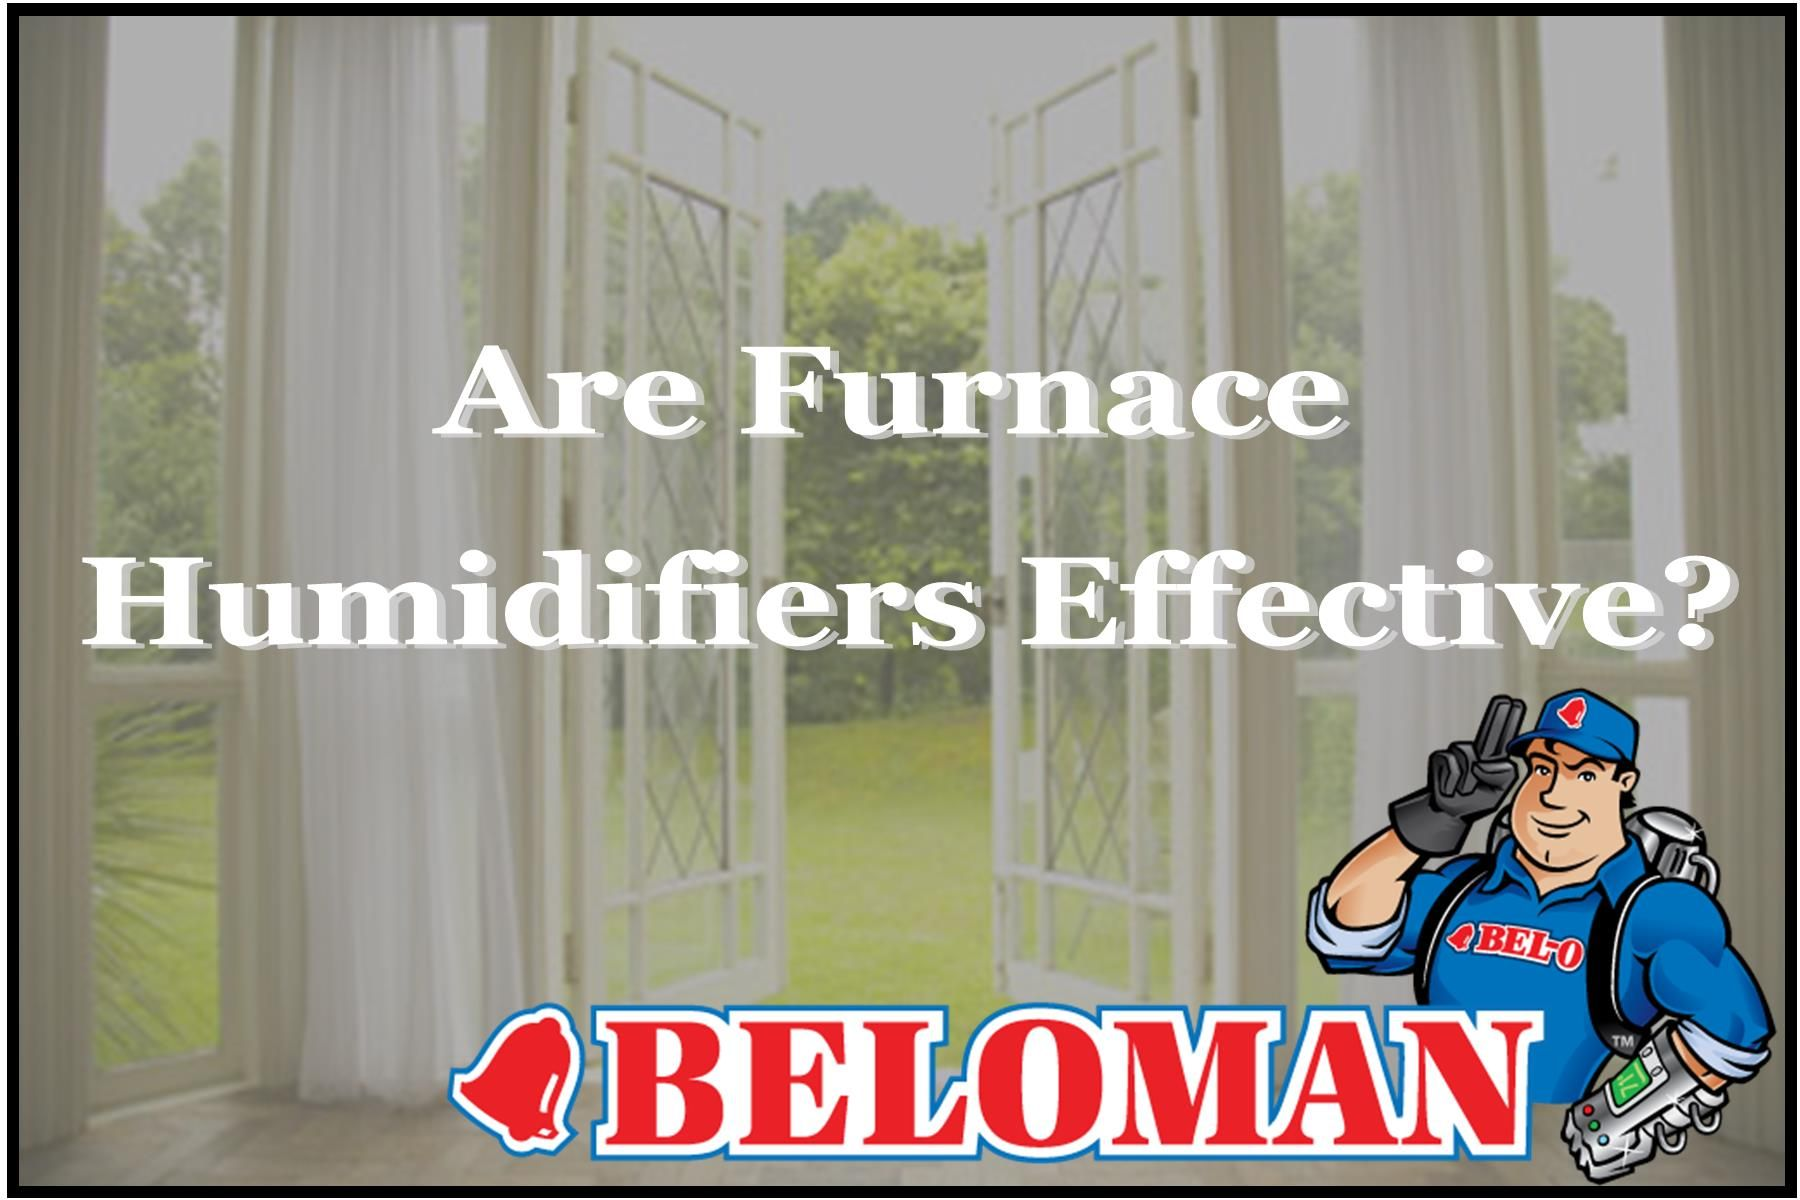 Are Furnace Humidifiers Effective Humidifier, Indoor air